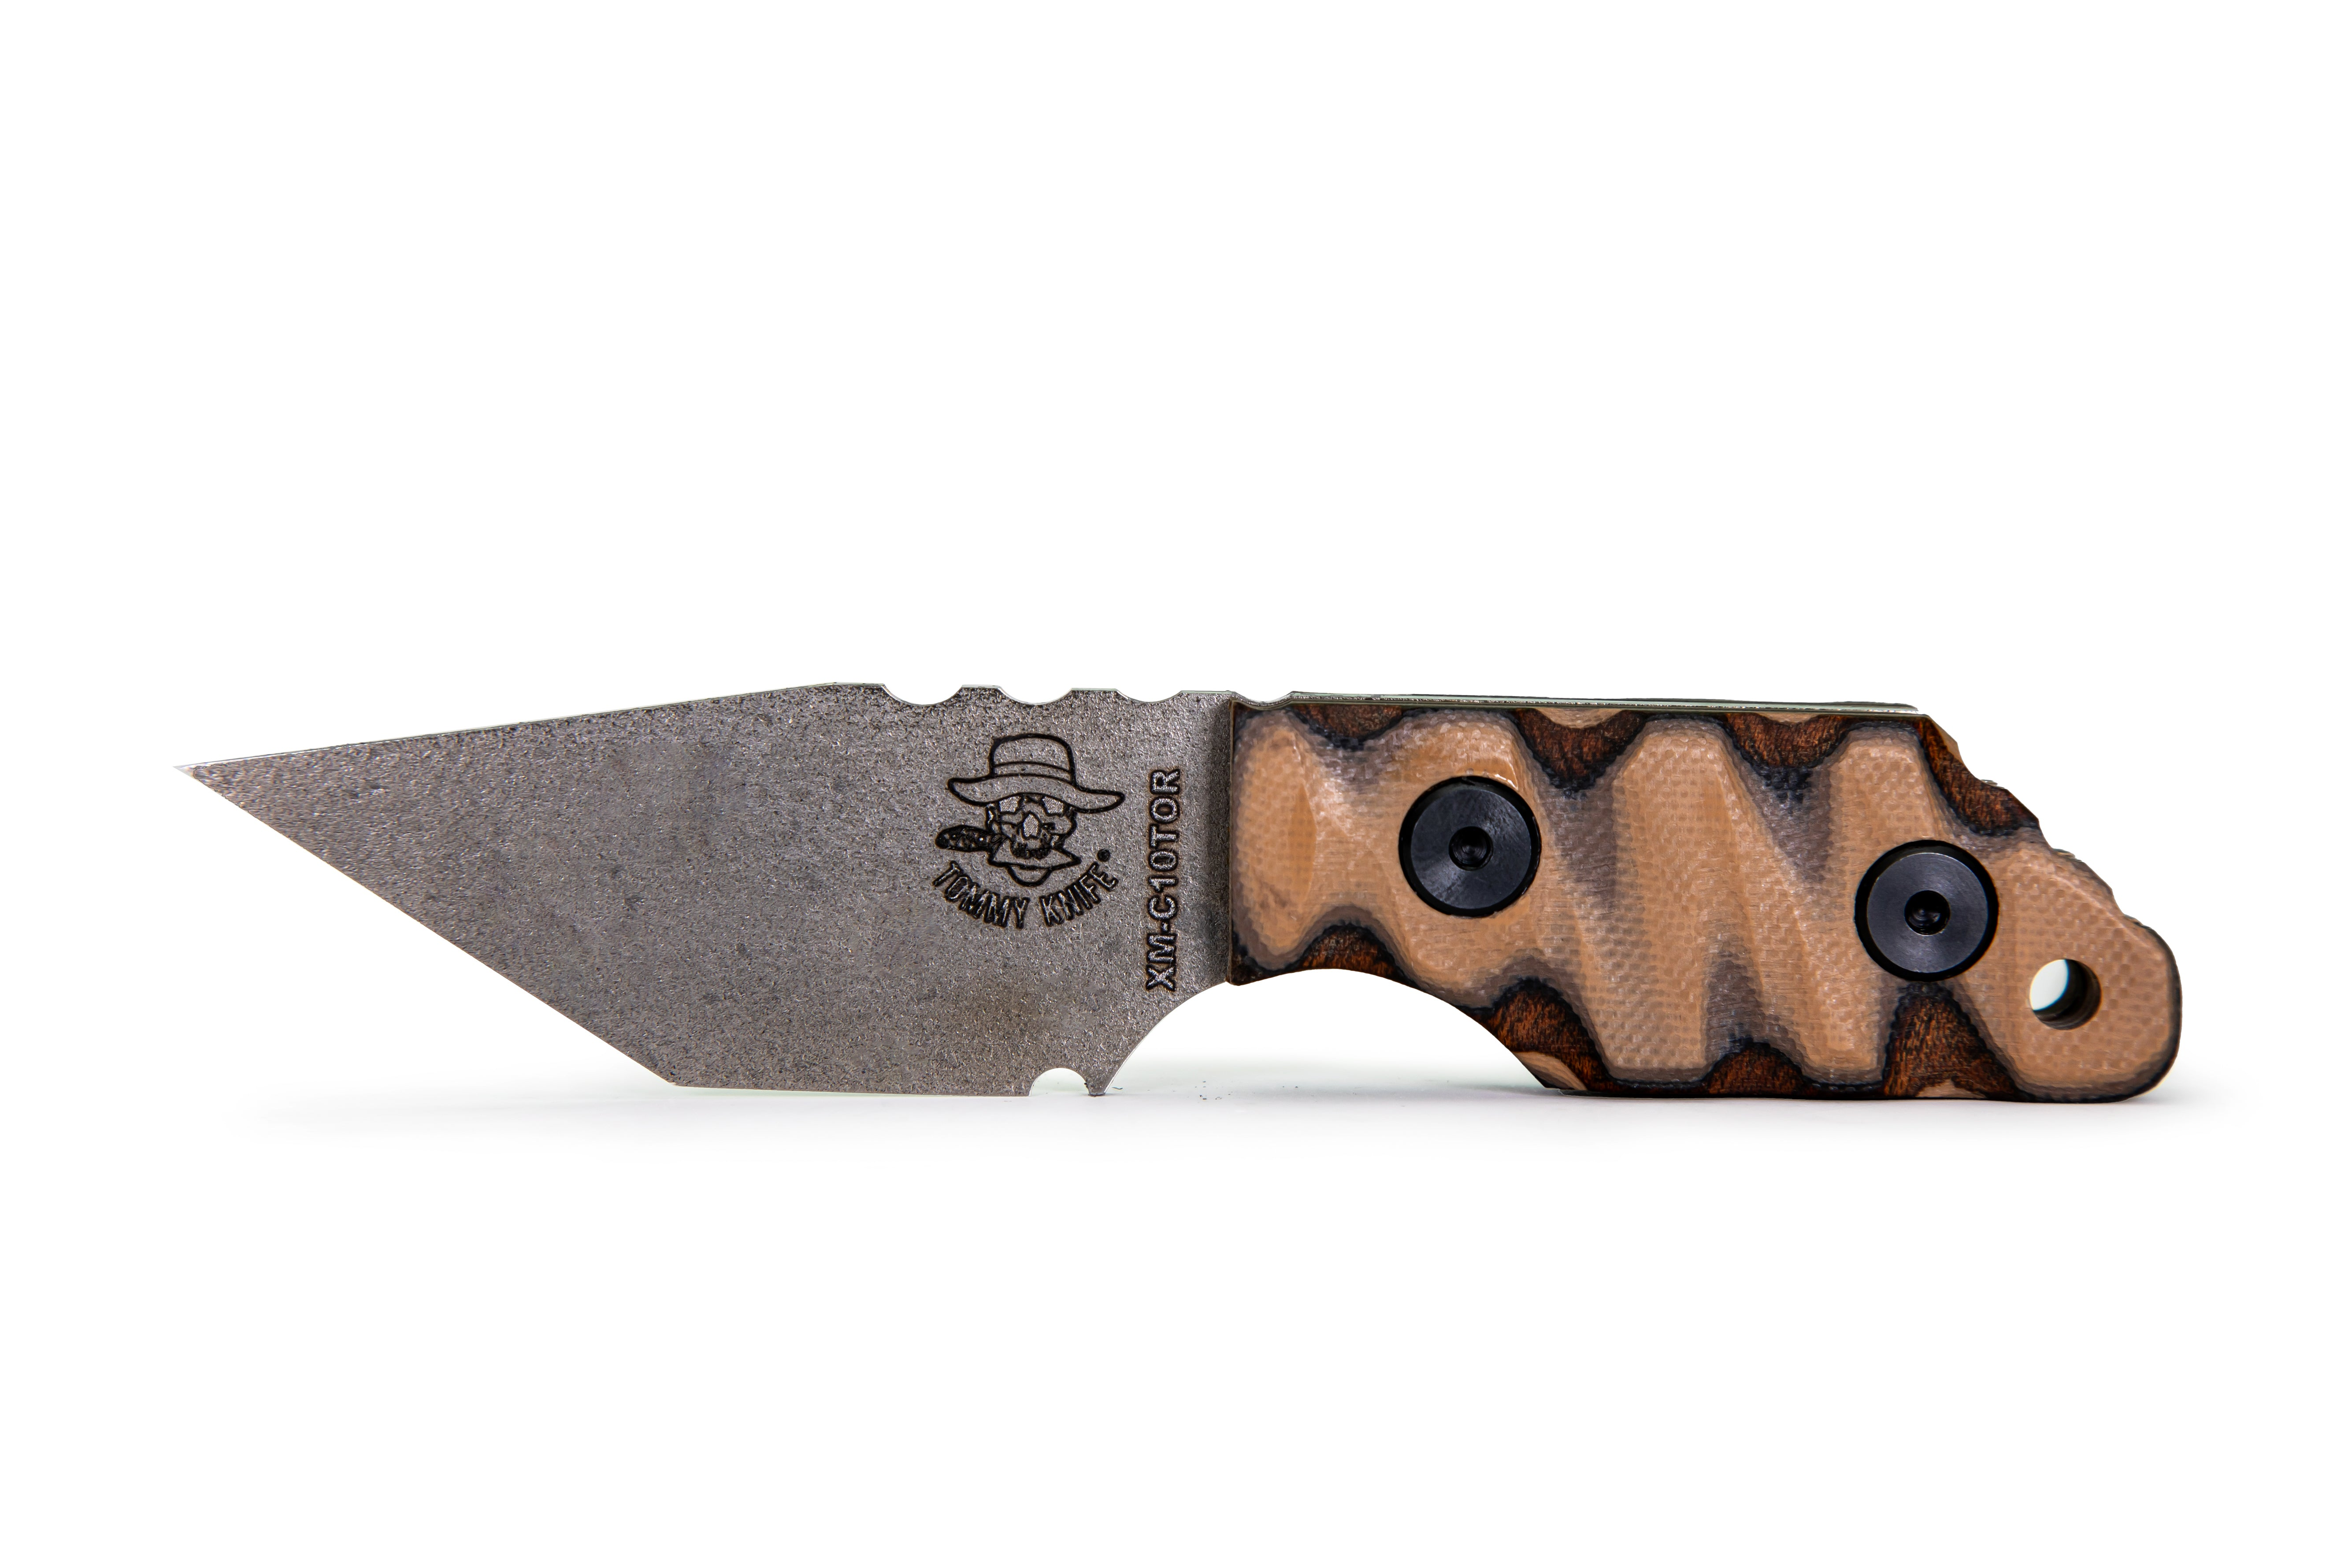 Tommy Knife® Charlie with Layered Wood & G10 Caveman Grip - Right Grind